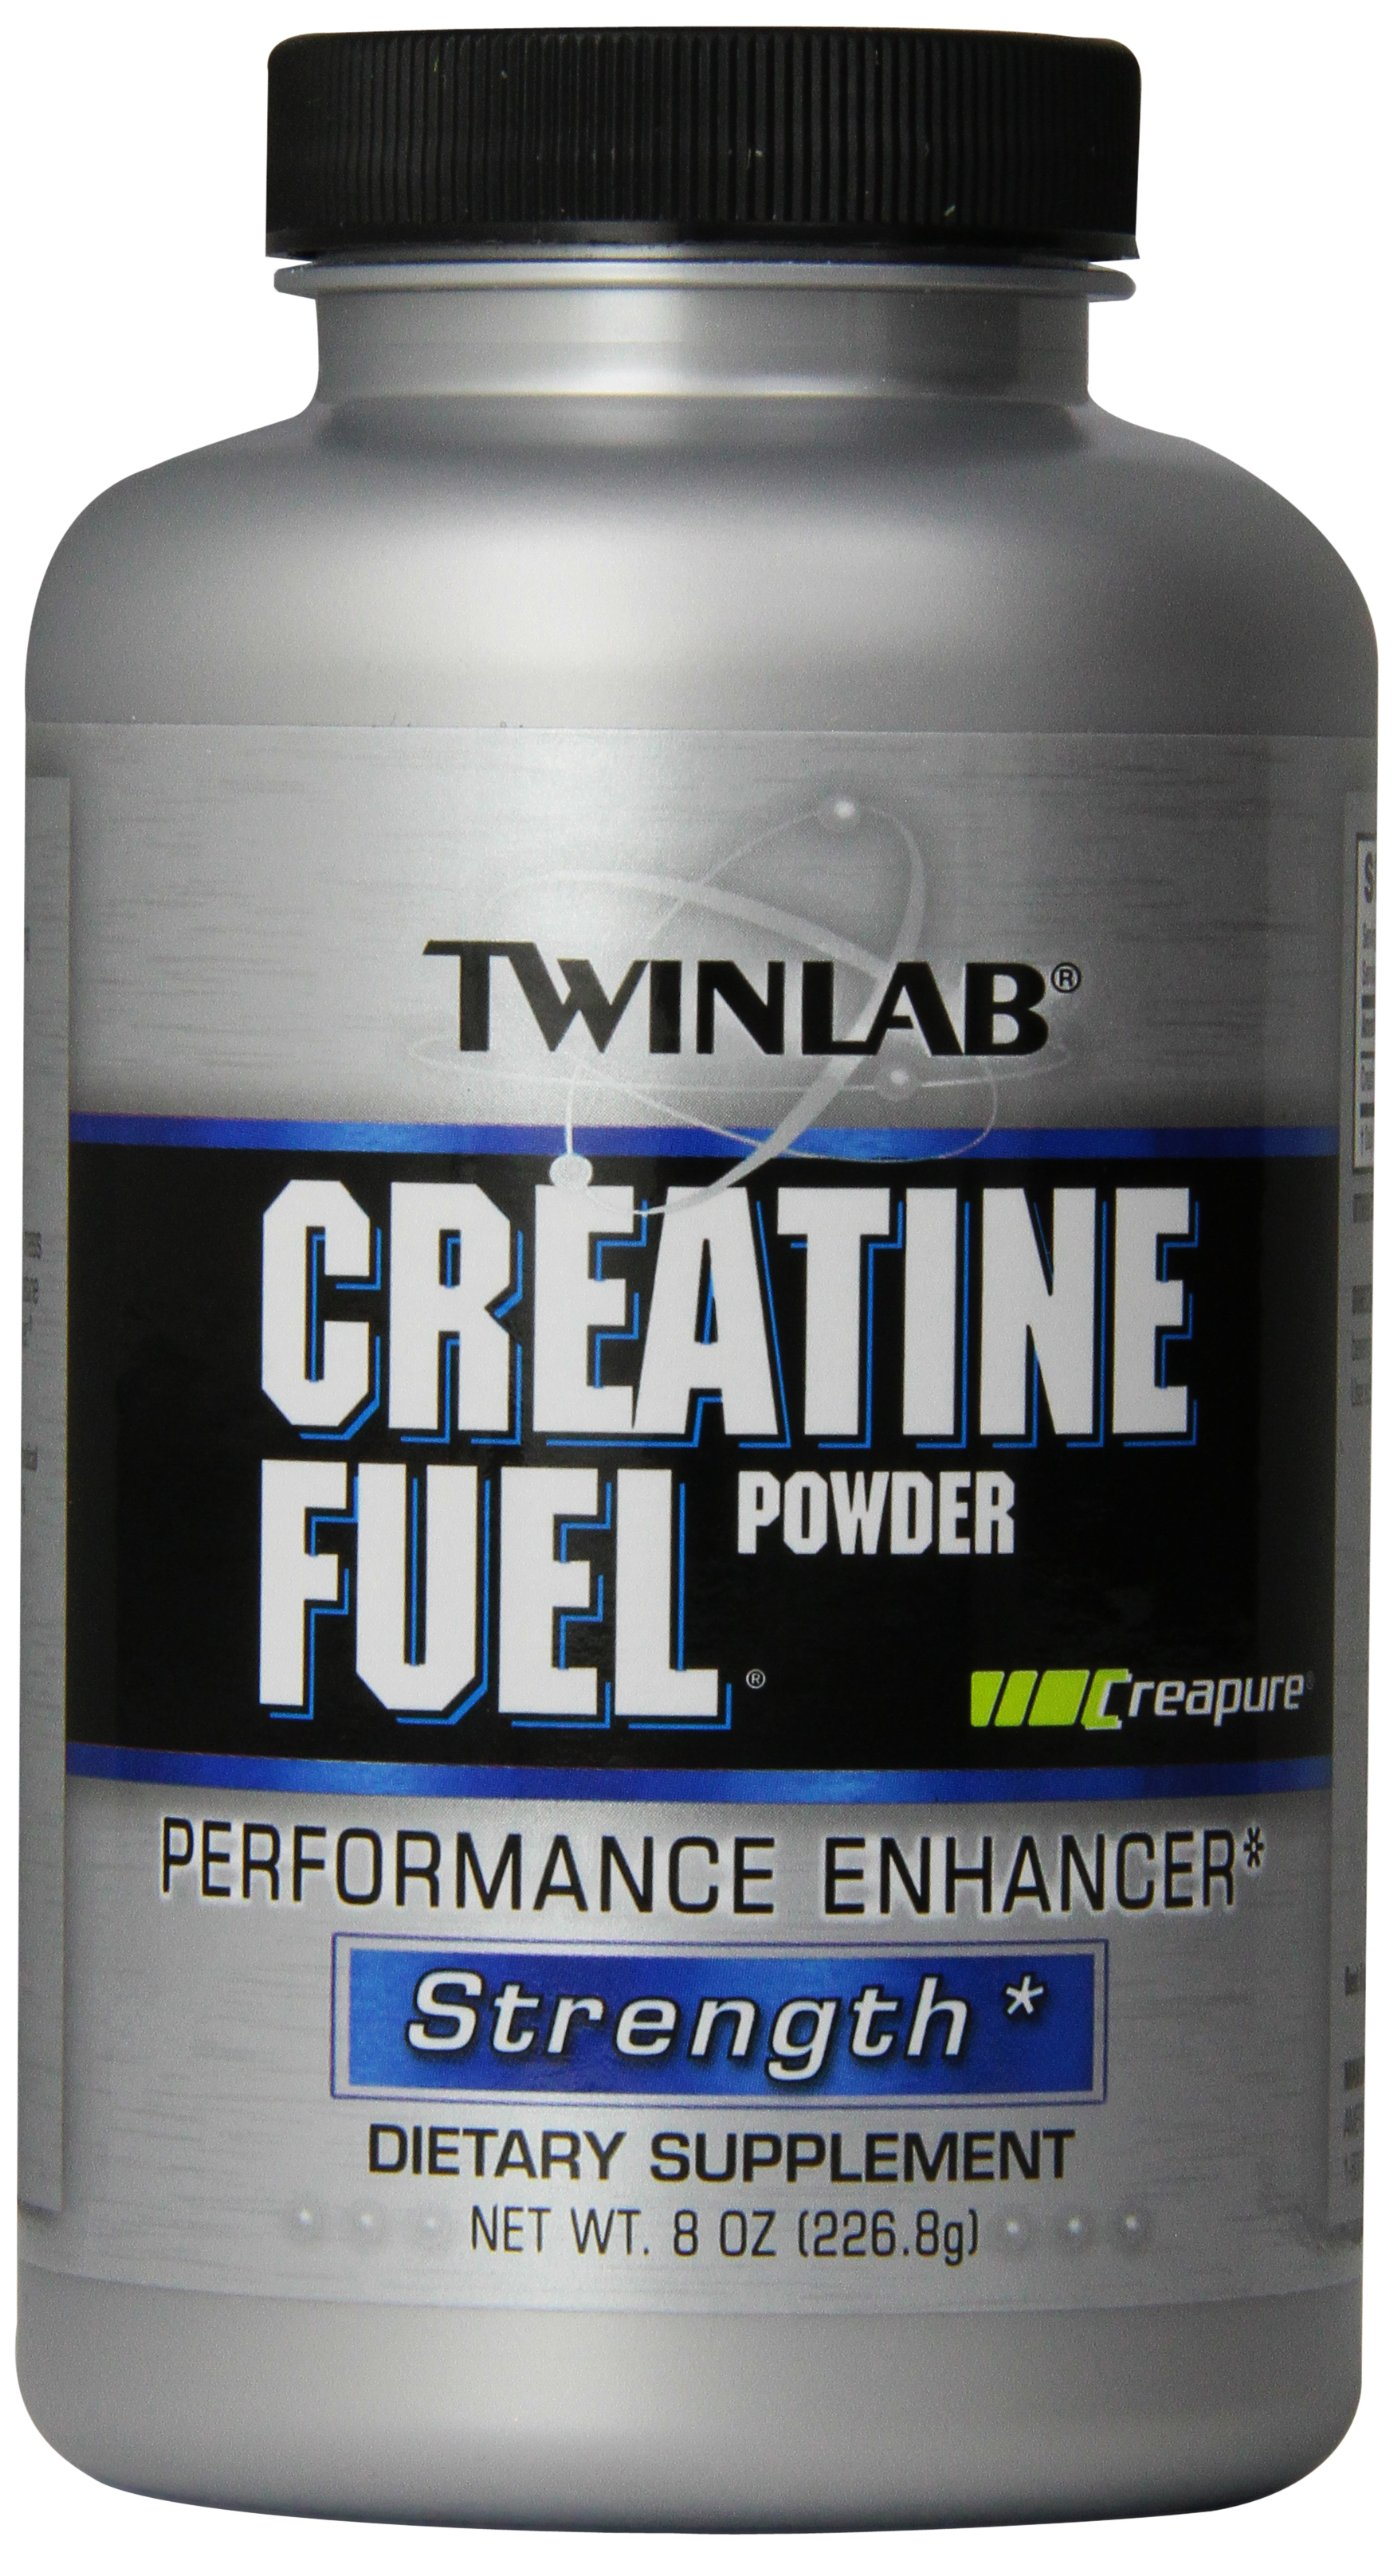 Twinlab Creatine Fuel Powder, 16 Ounce (Pack of 2)